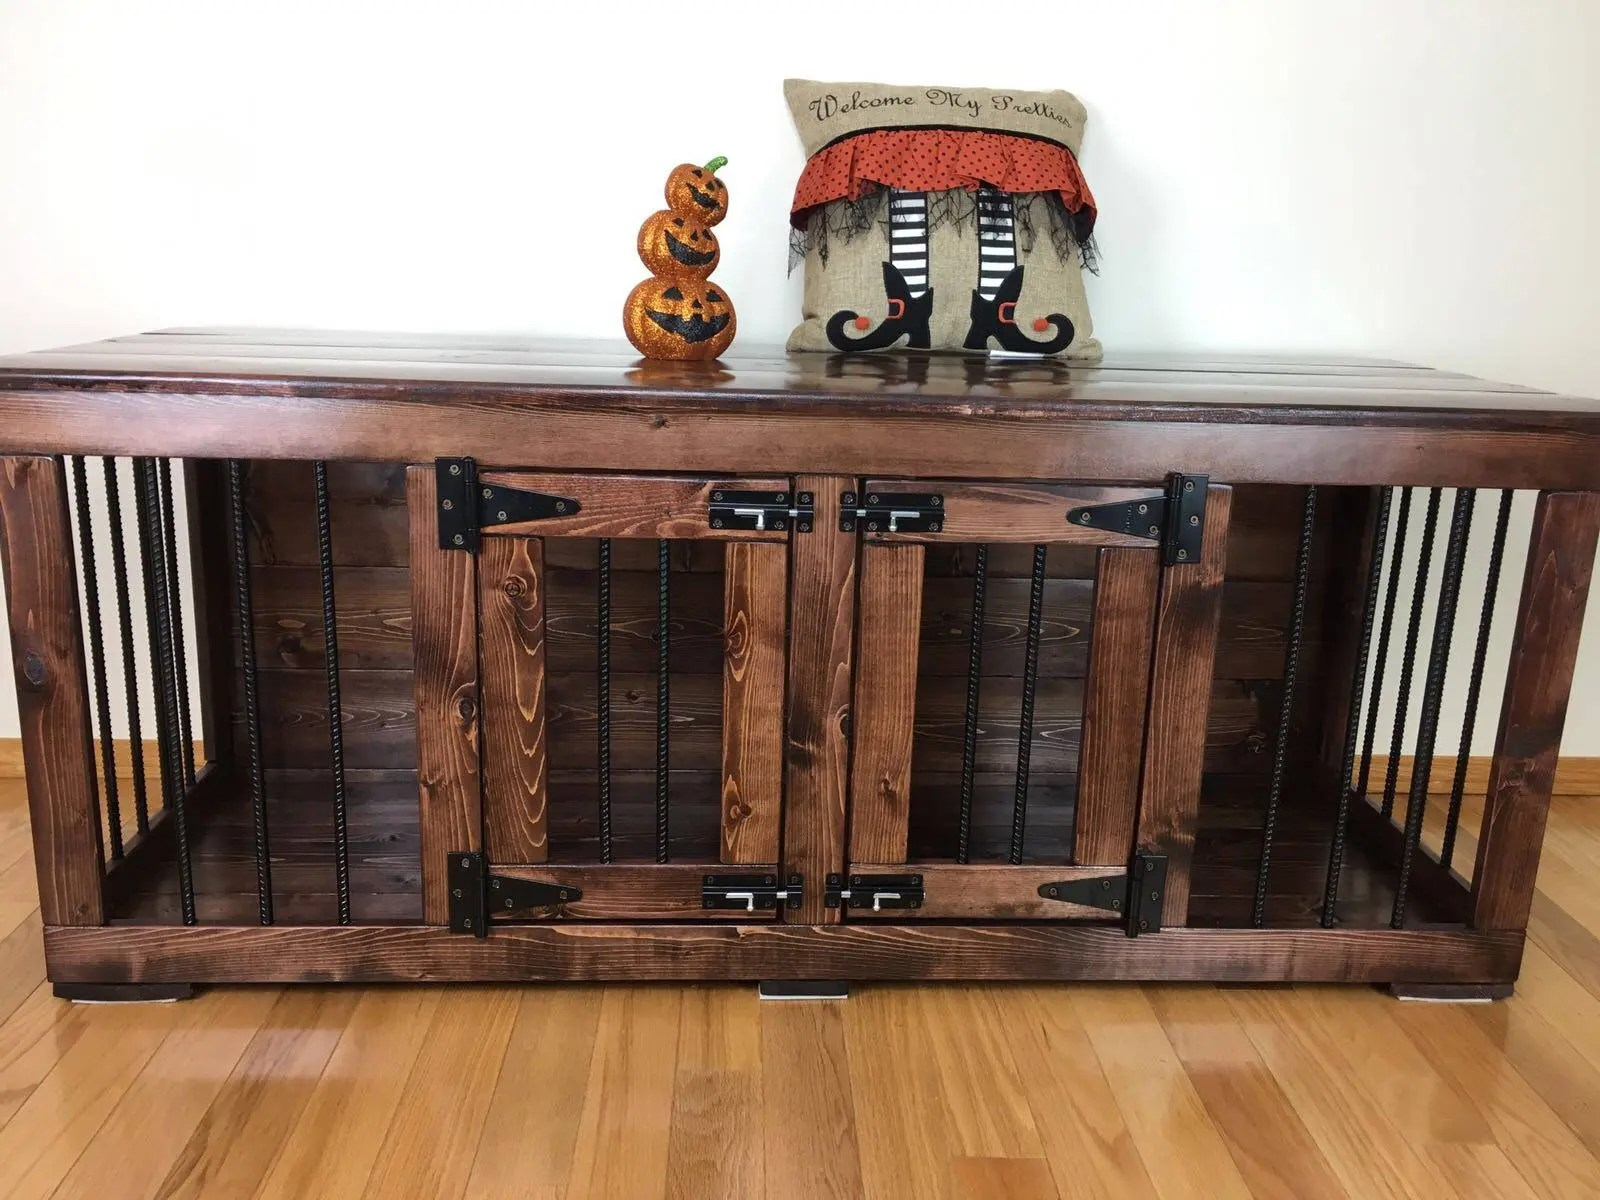 Double Dog Bed Pretties 1 On Etsy Double Dog Kennel Custom Kennel Handmade Kennel Dog Bed Dog Crate Furniture Pet Furniture Handcrafted Wood